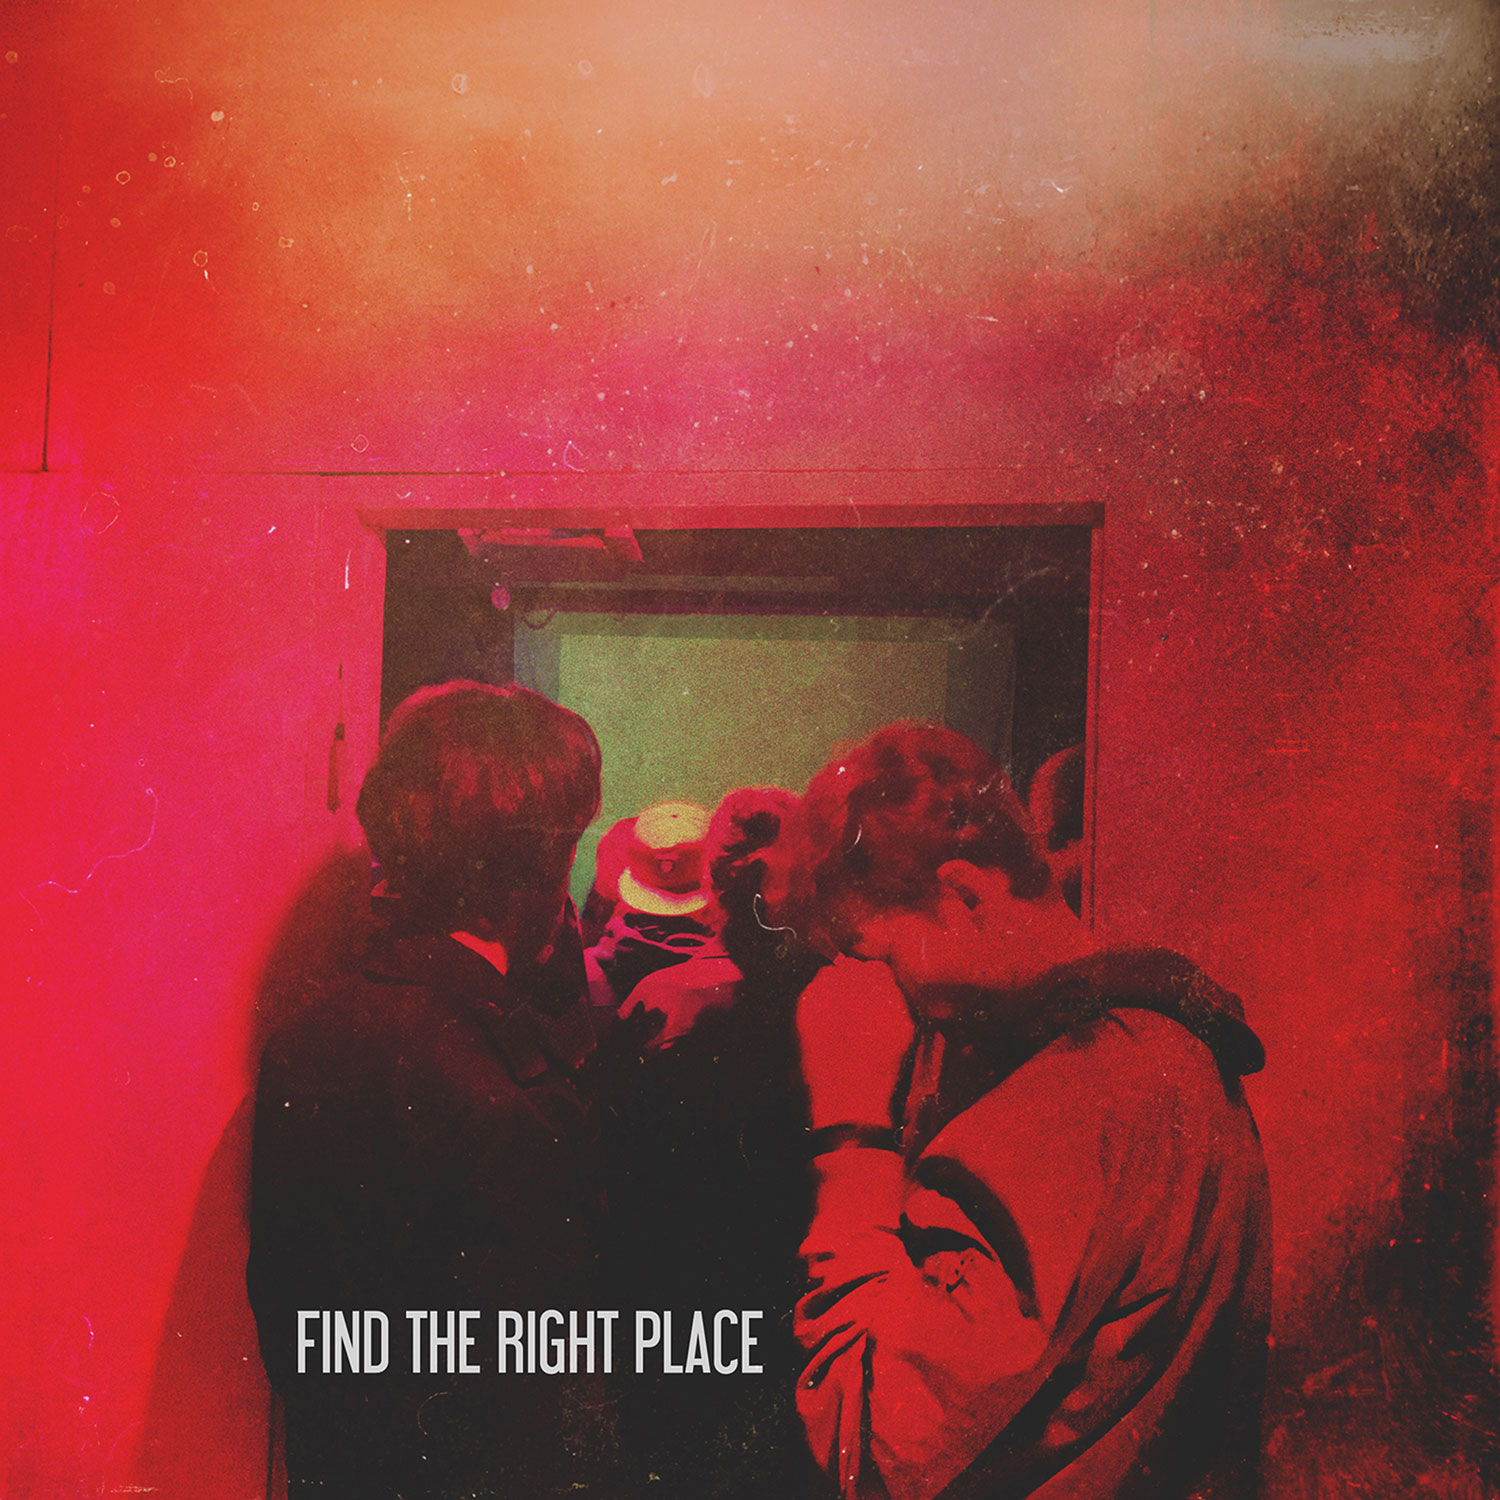 Arms And Sleepers - Find The Right Place